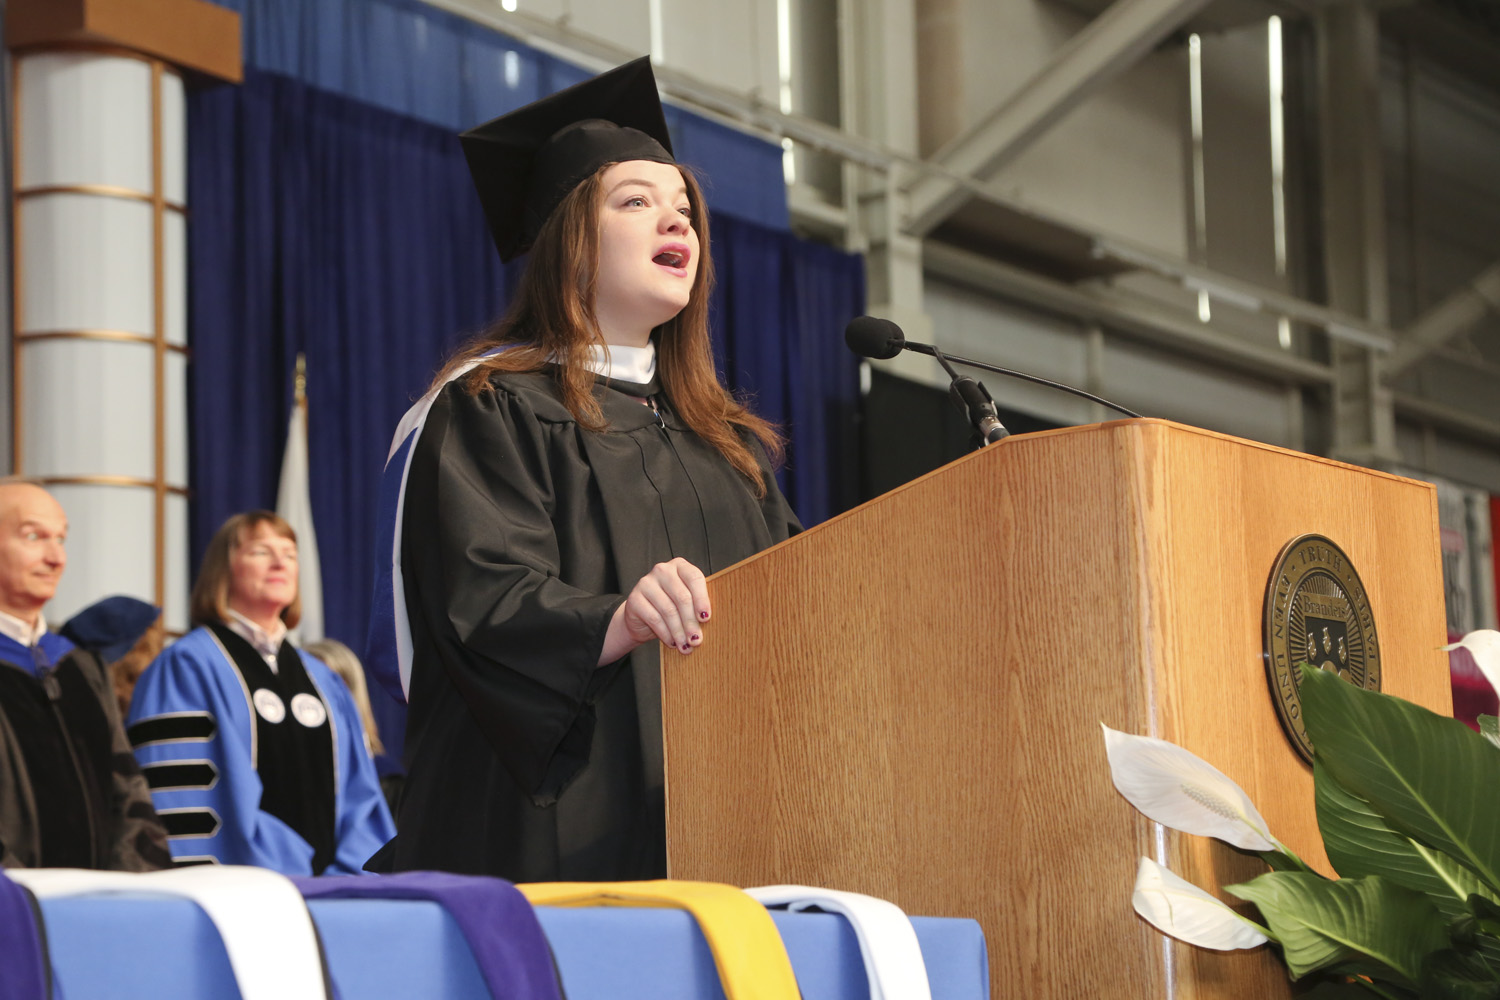 at his commencement from brandeis unive Busdt swimming and diving february 9, 2018 brandeis university swimming and diving honors their nine seniors on february 3rd: abby damsky, genna karp, and amy play video fencing senior day 2018 february 3, 2018 bill shipman honors (and roasts) the seniors on his team at the eric sollee invitational.